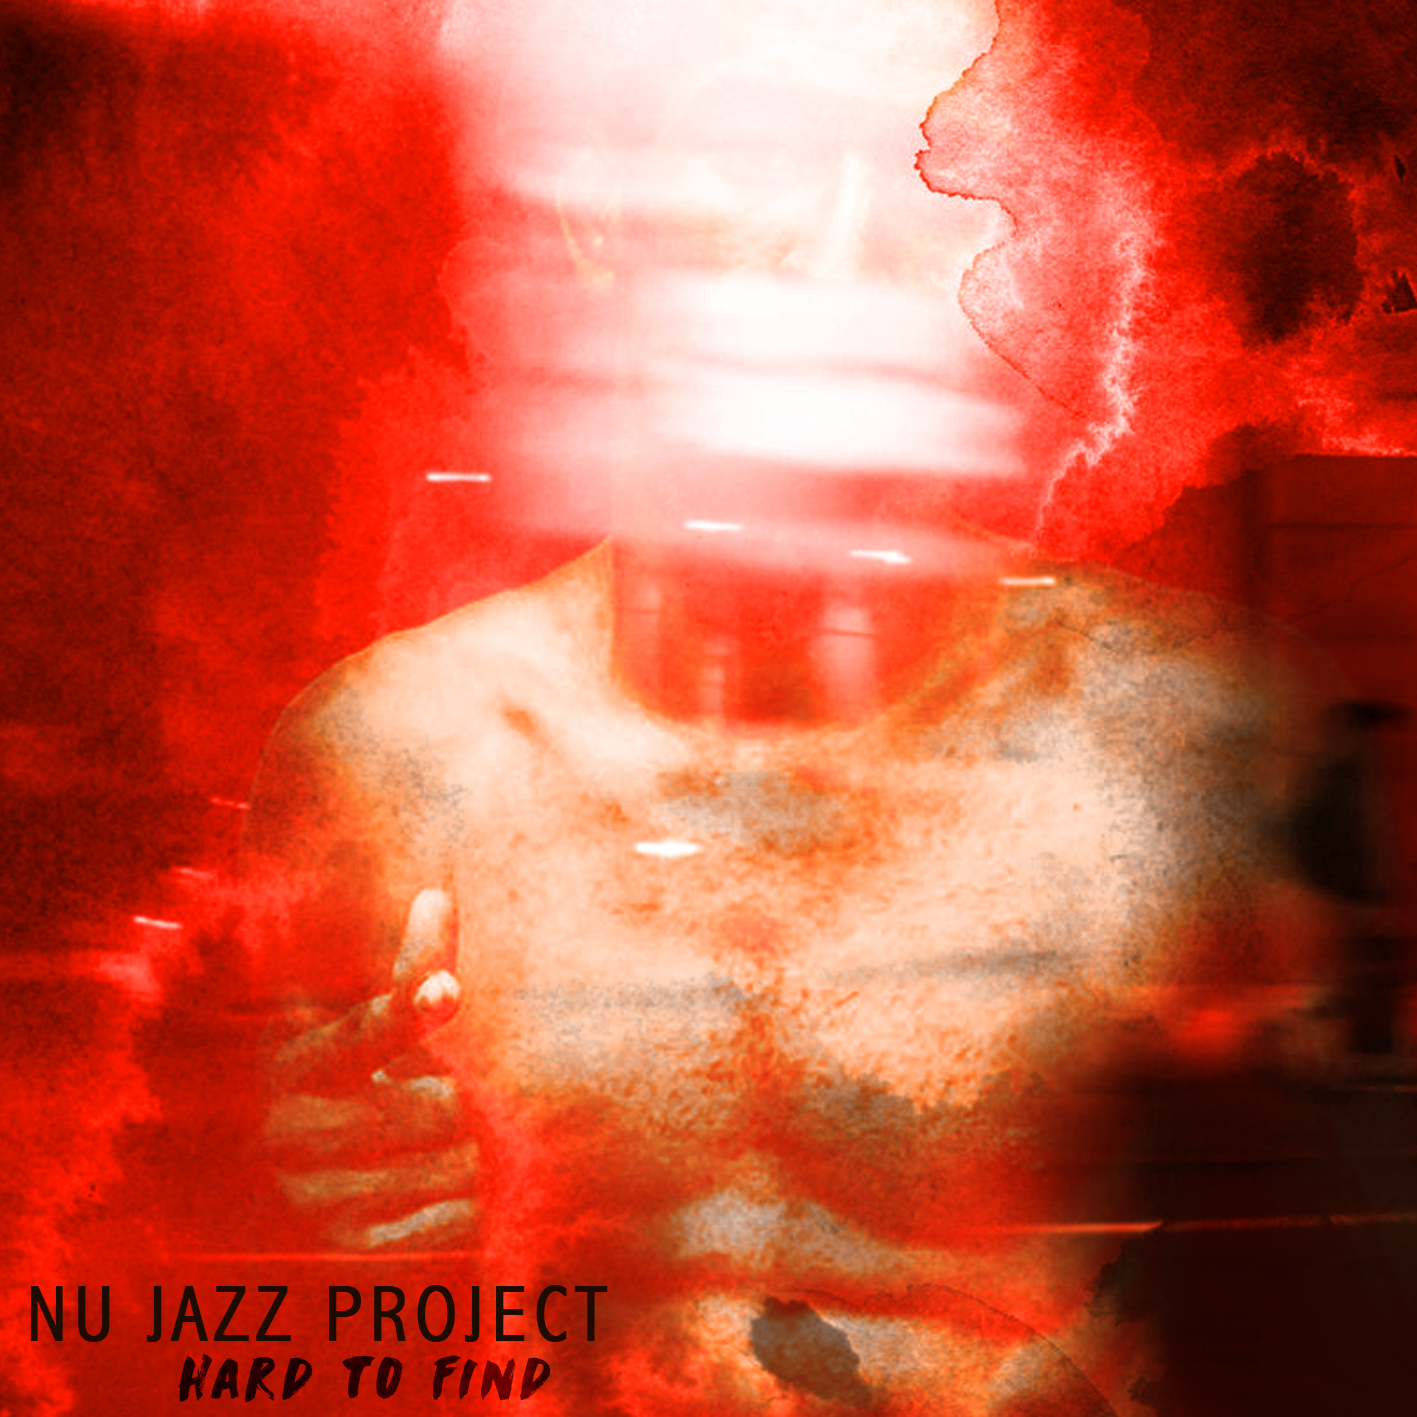 Nu jazz project : hard to find